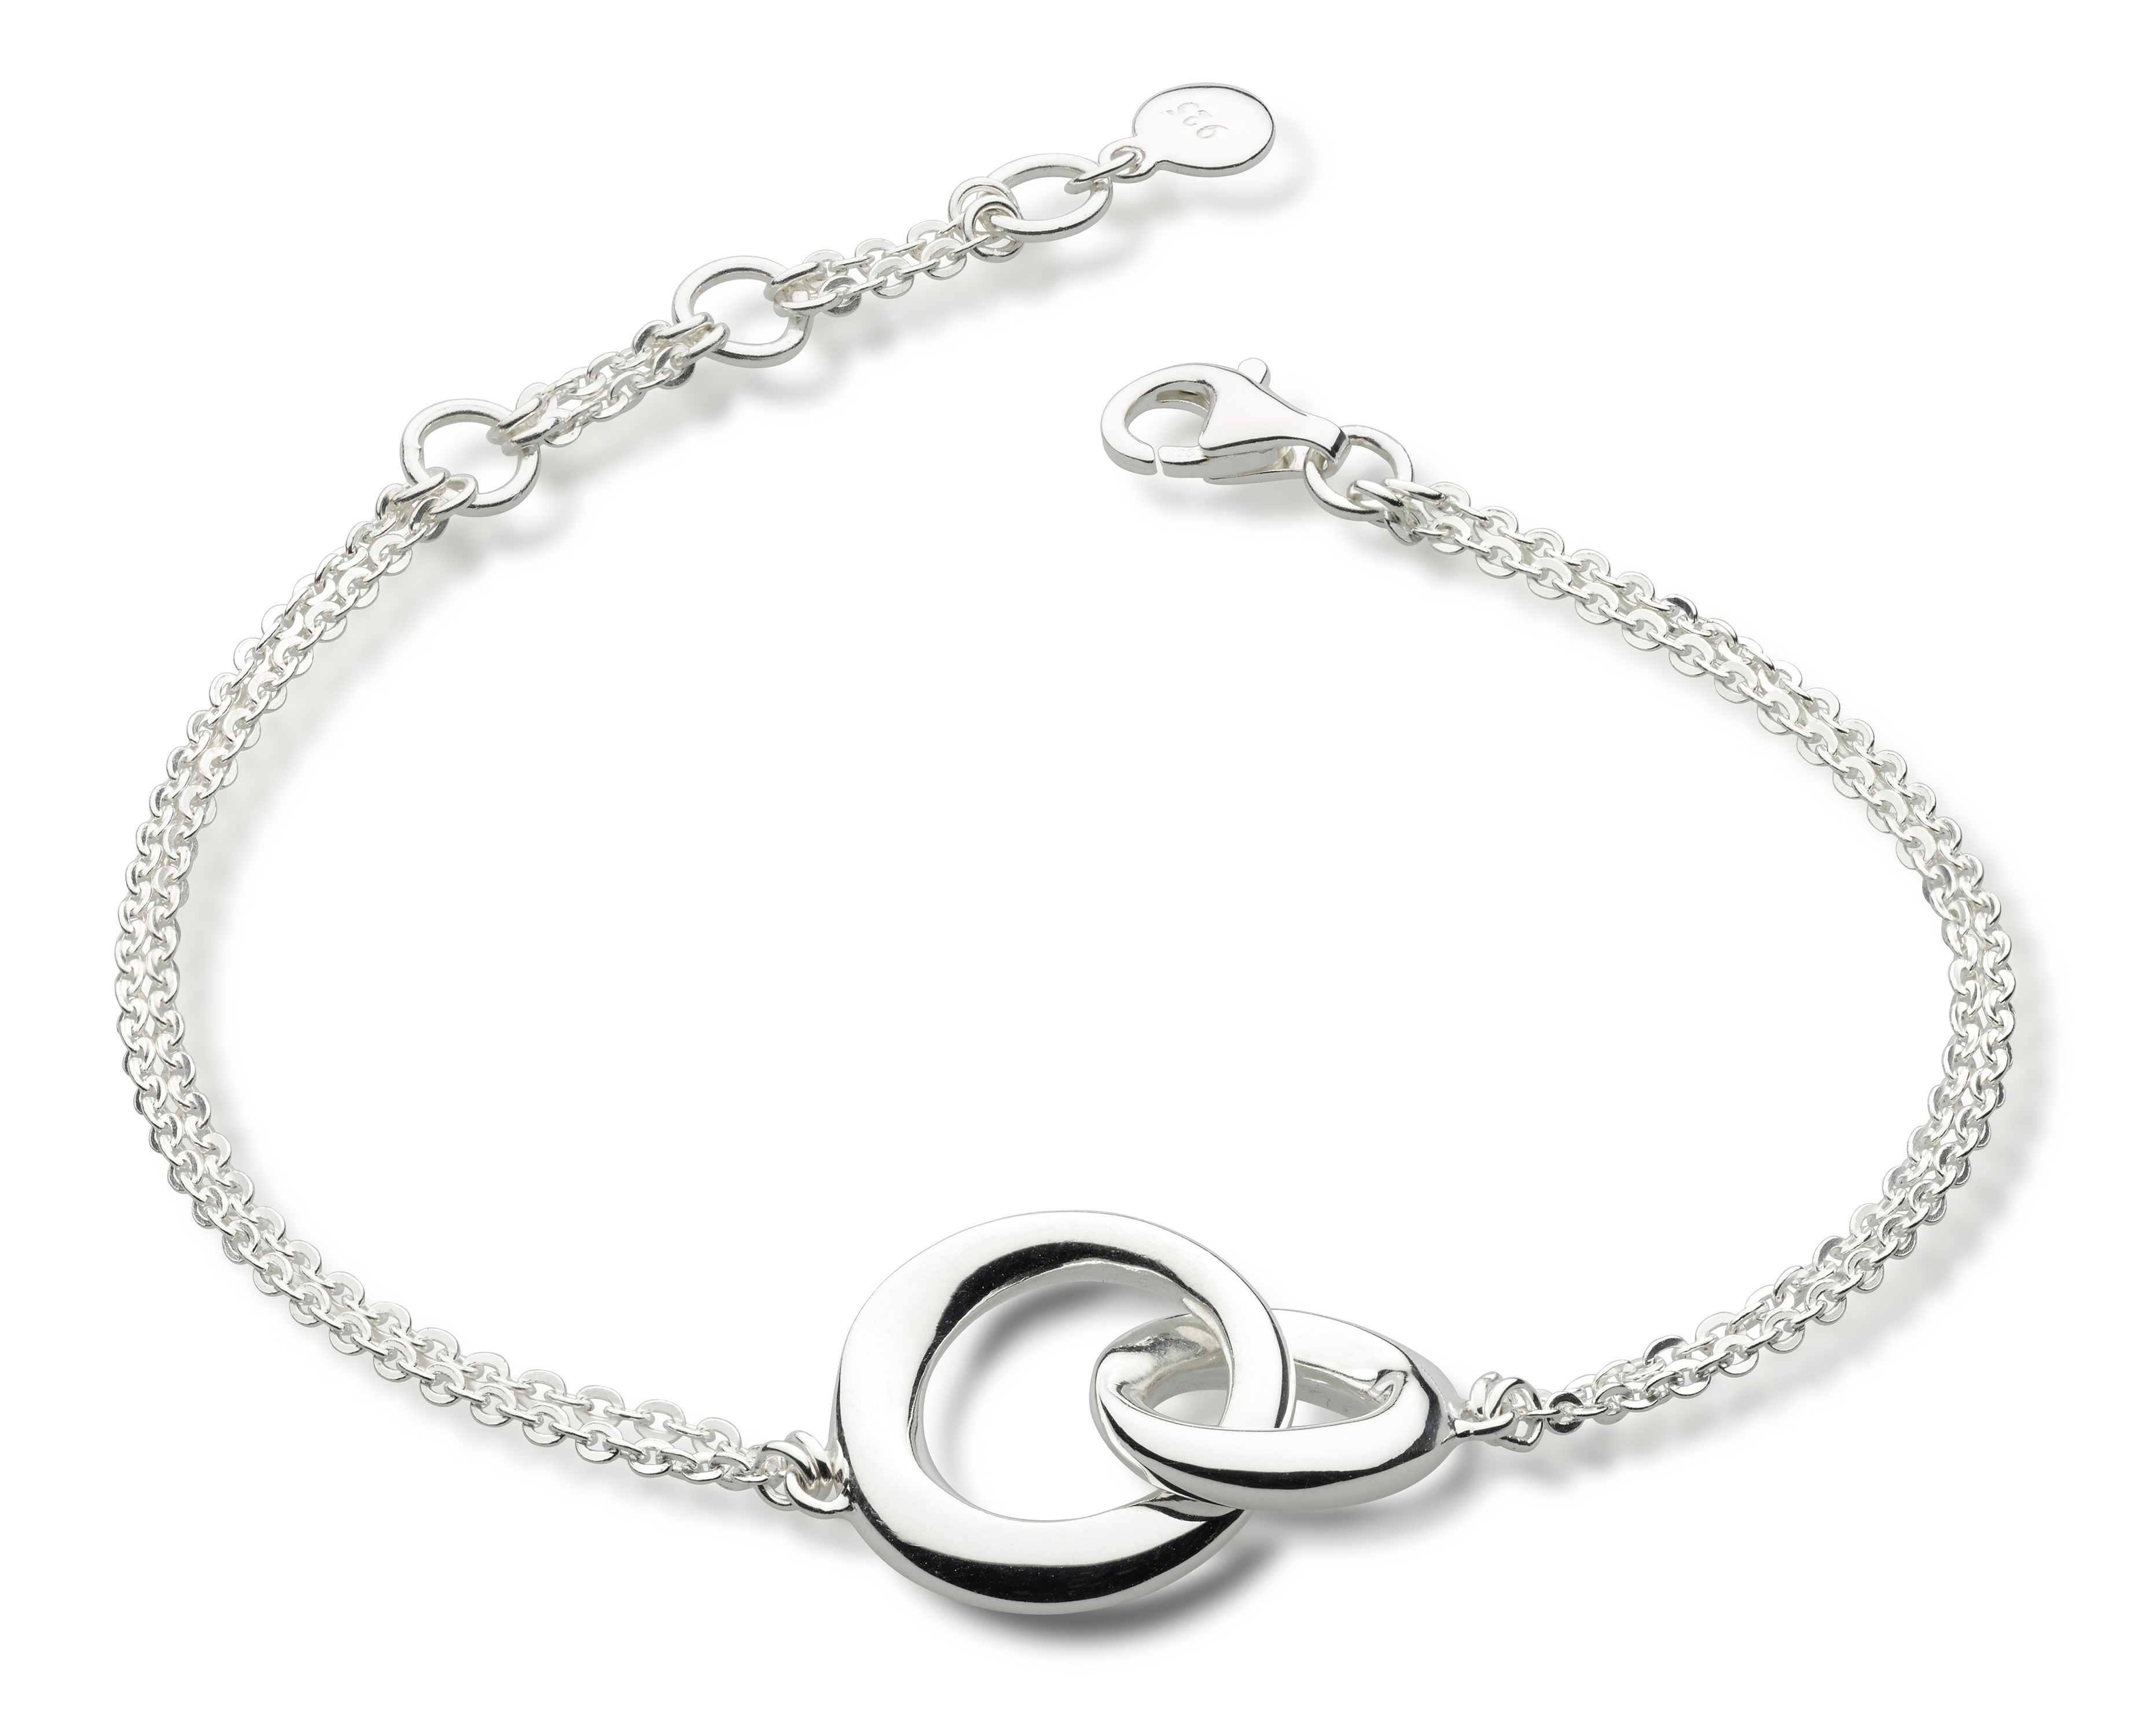 Sterling silver bracelet with interlocking circles